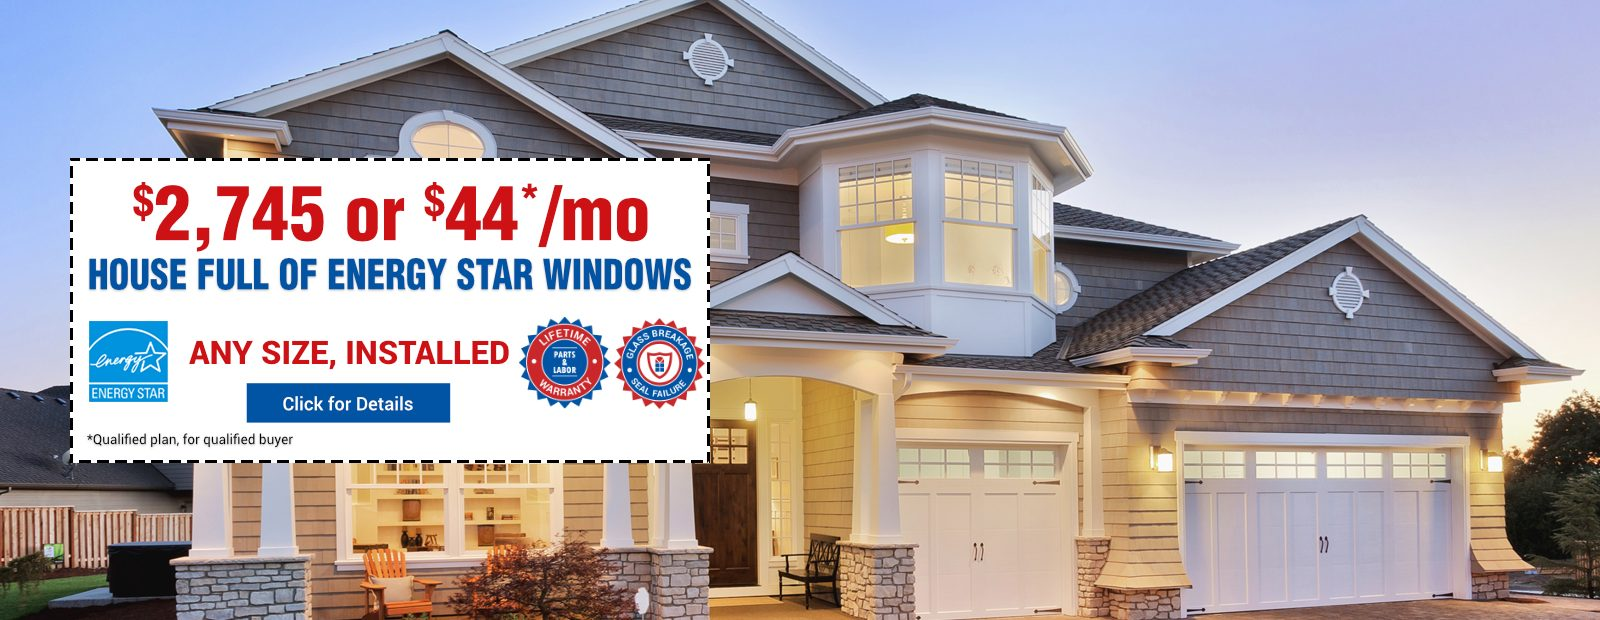 House Full Energy Star Windows